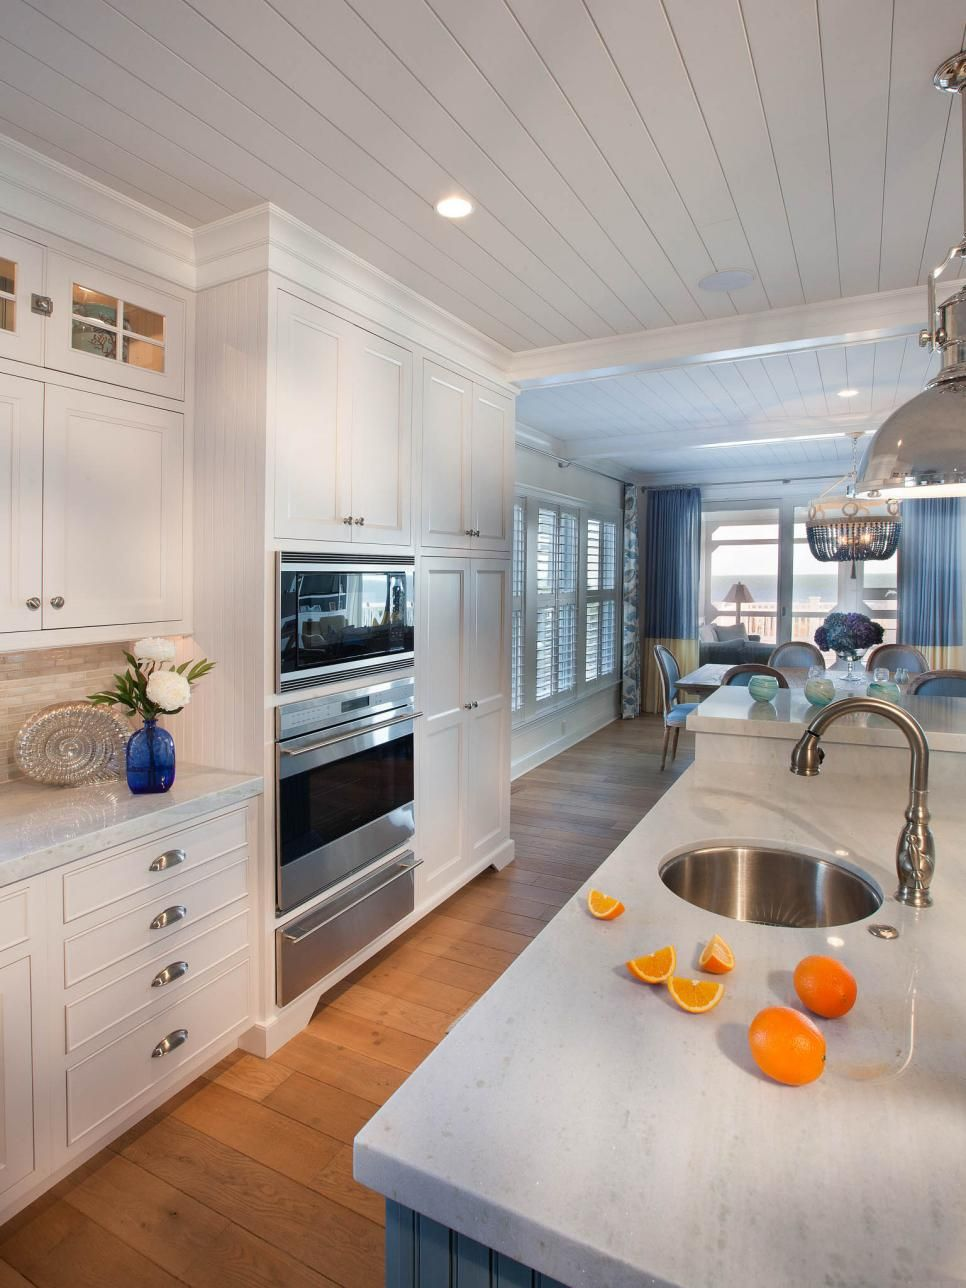 The different kitchen layouts bandidusa home design preferance - 1000 Images About New Kitchen On Pinterest Islands Gray Cabinets And Cabinets